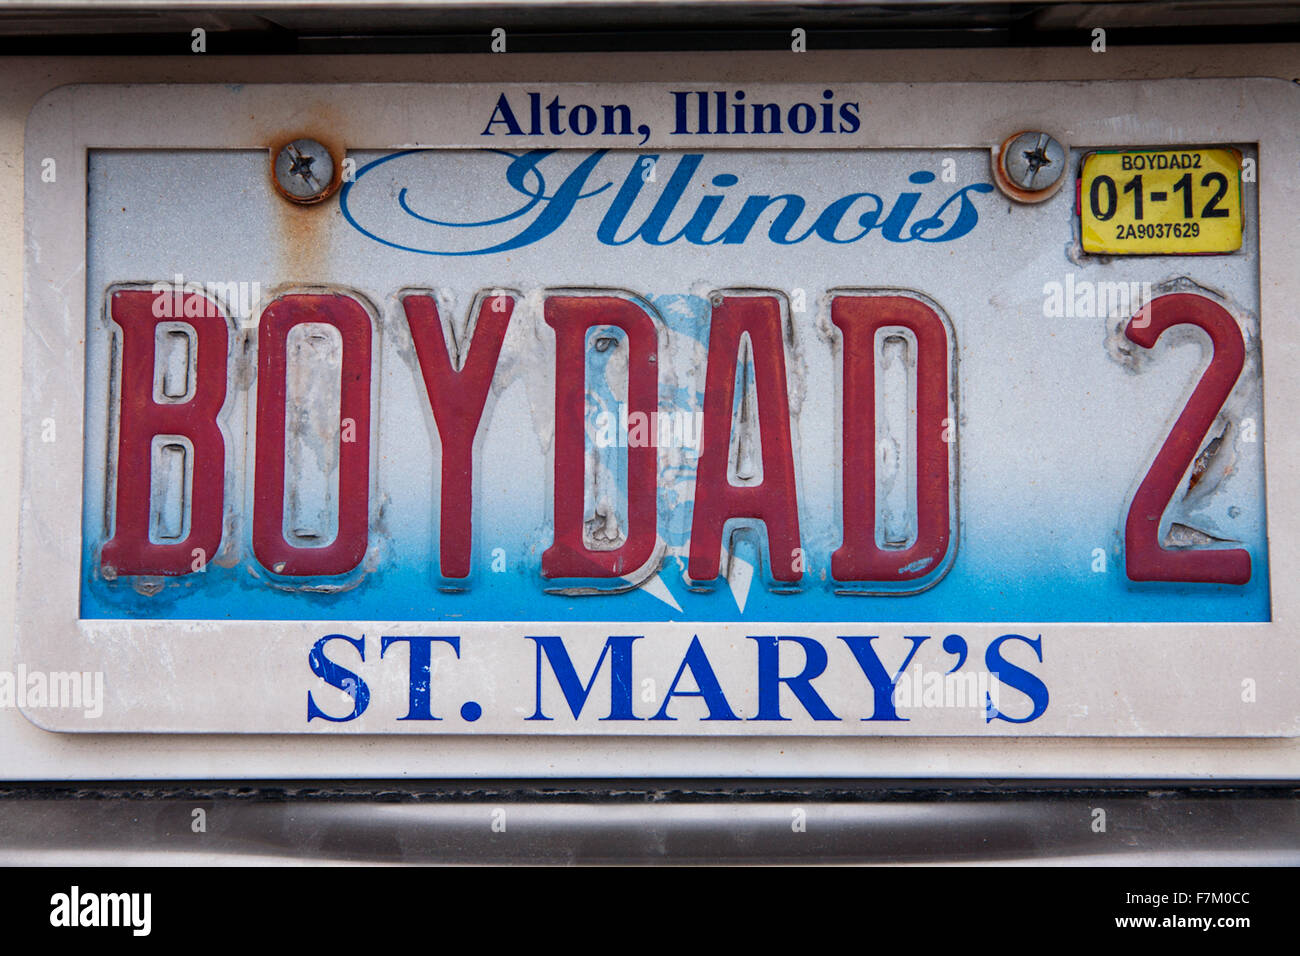 Illinois license plate reads BOYDAD2 - Stock Image & Illinois License Plate Stock Photos u0026 Illinois License Plate Stock ...